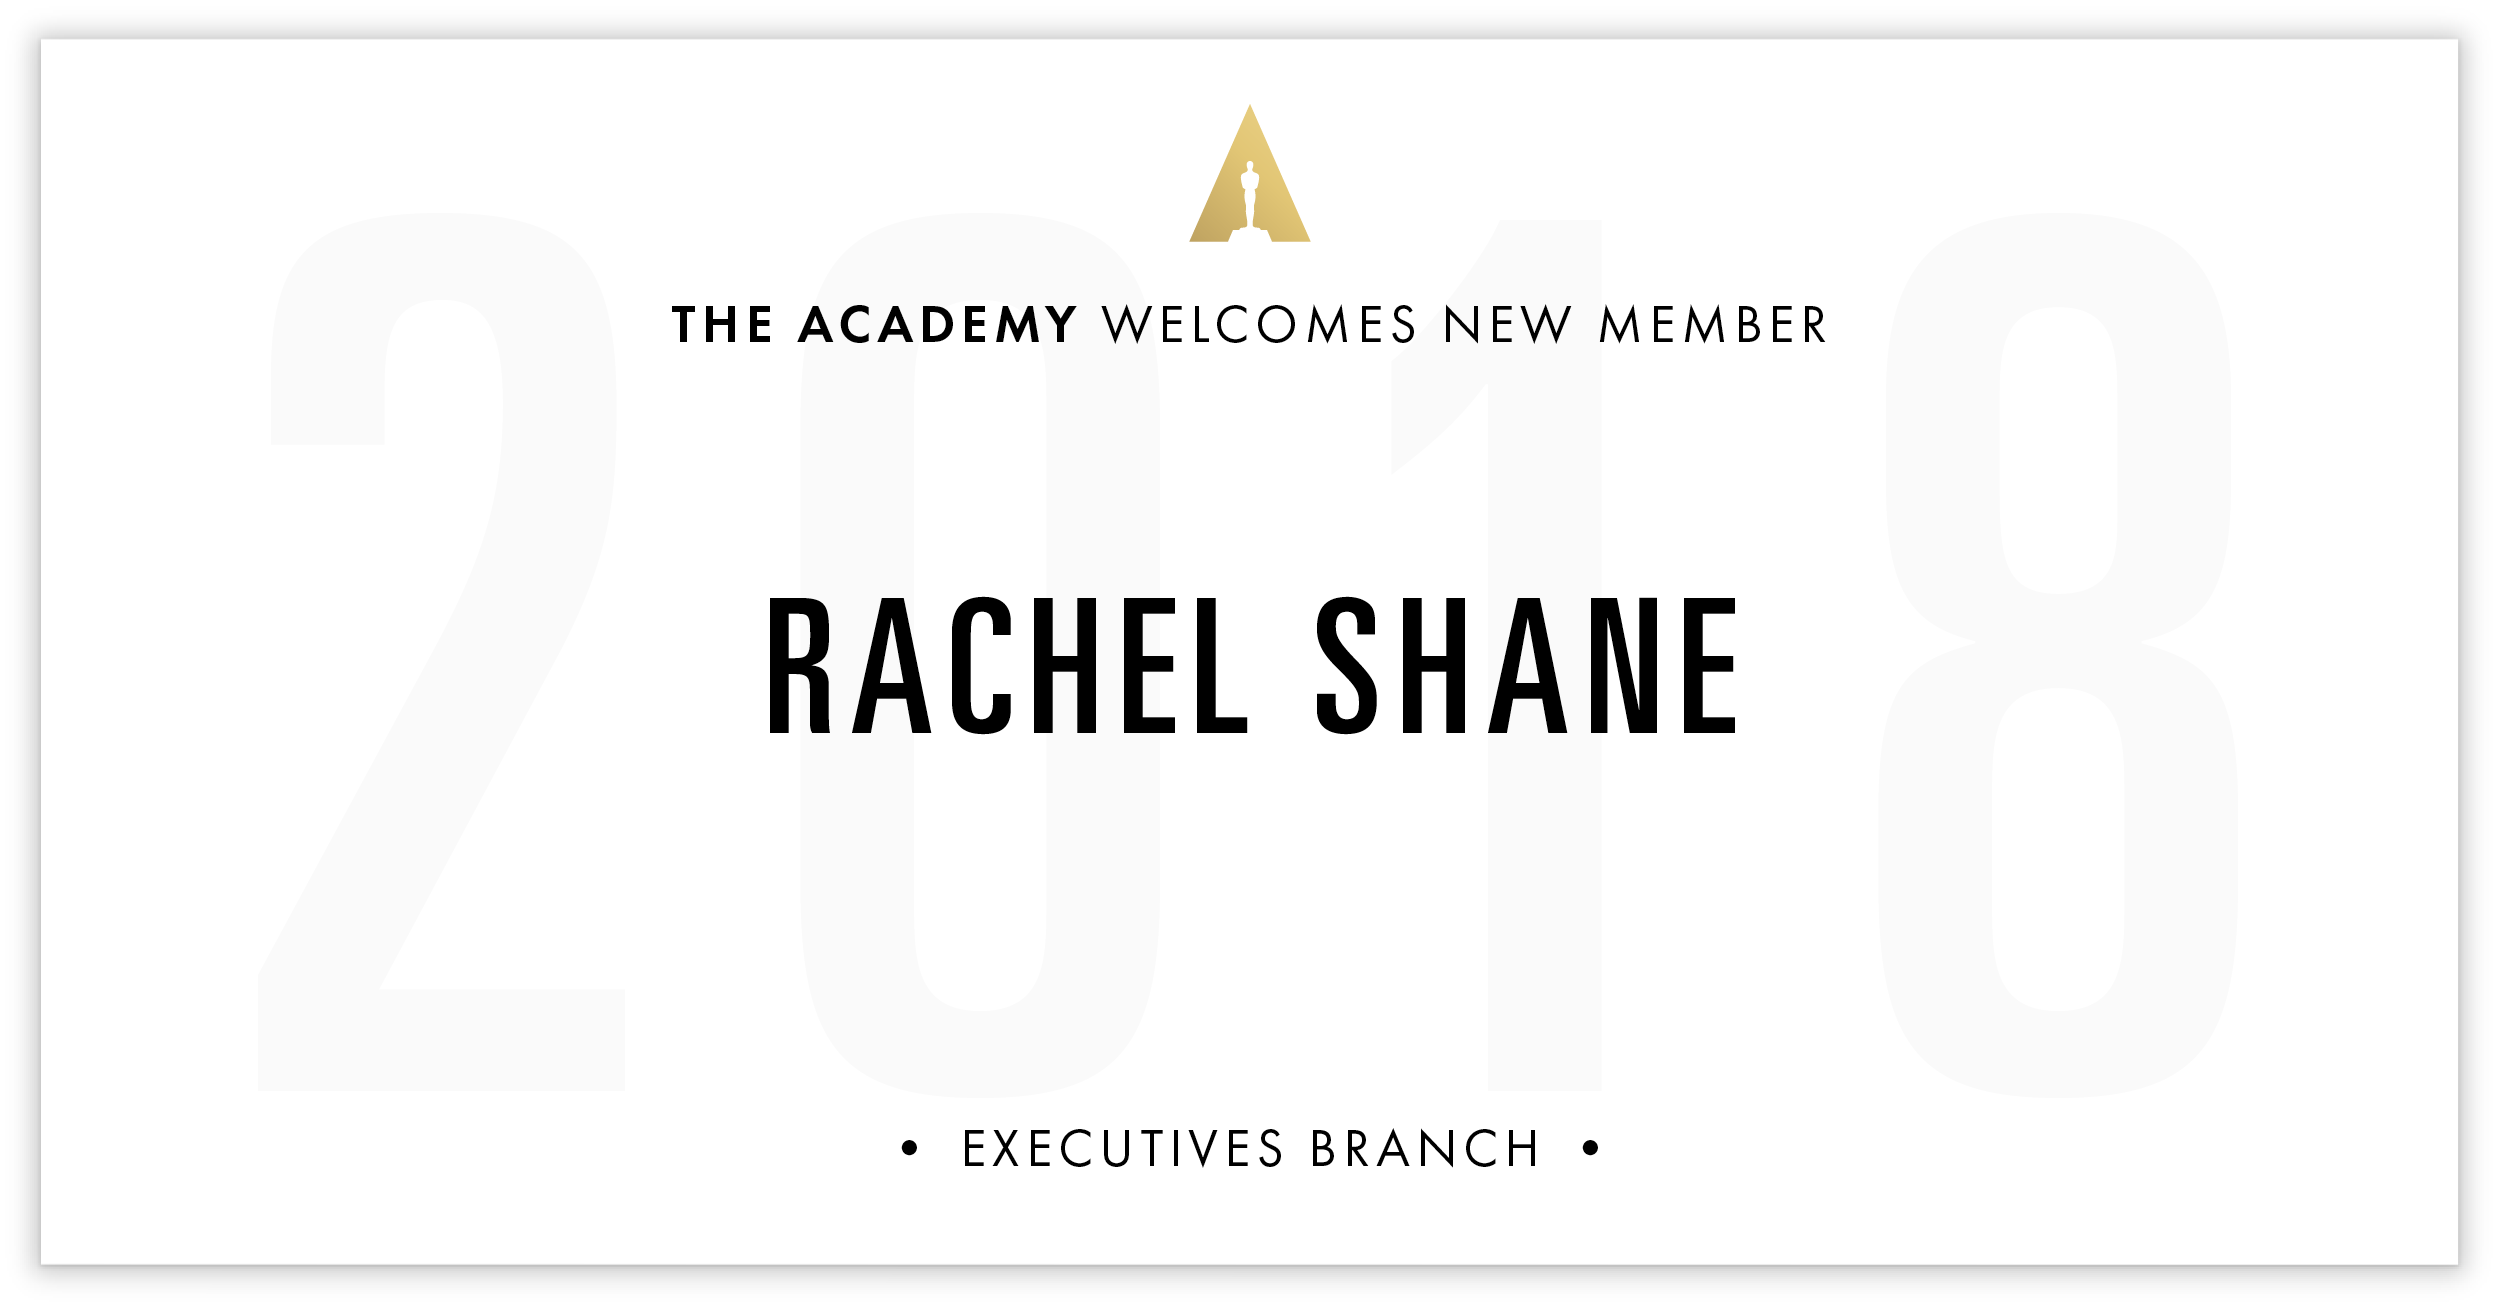 Rachel Shane is invited!